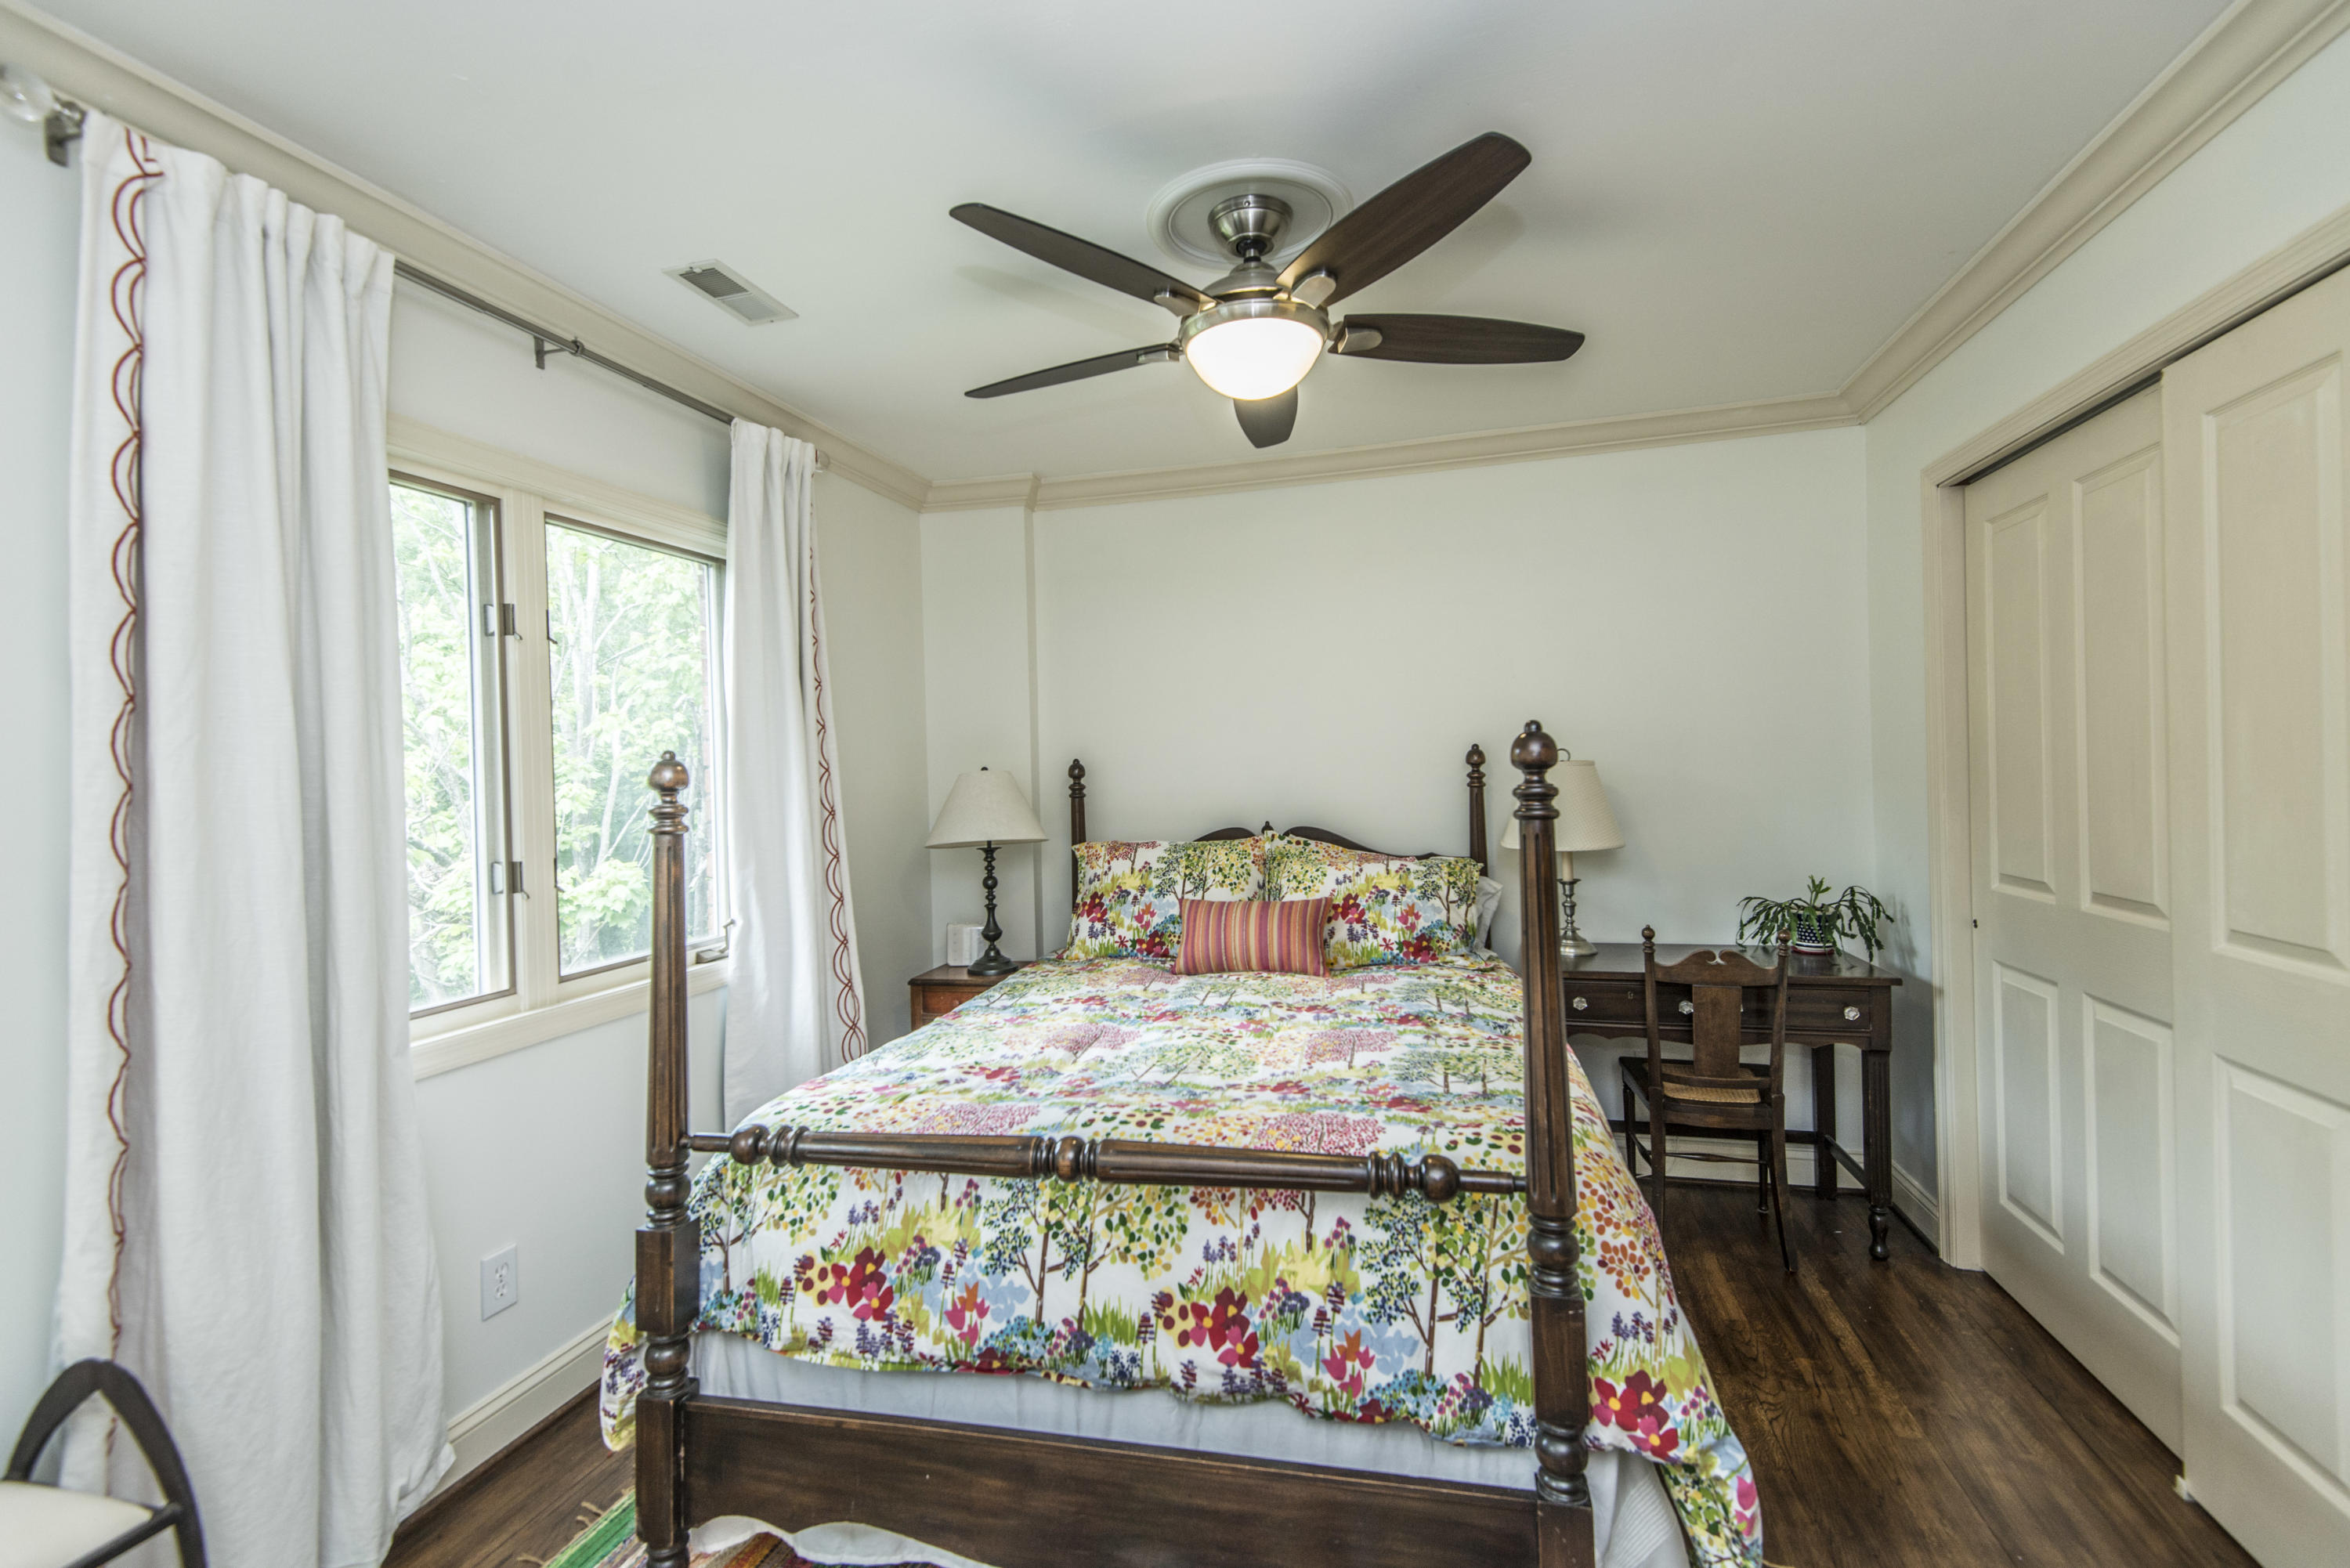 Stiles Point Plantation Homes For Sale - 921 Cotton House, Charleston, SC - 21